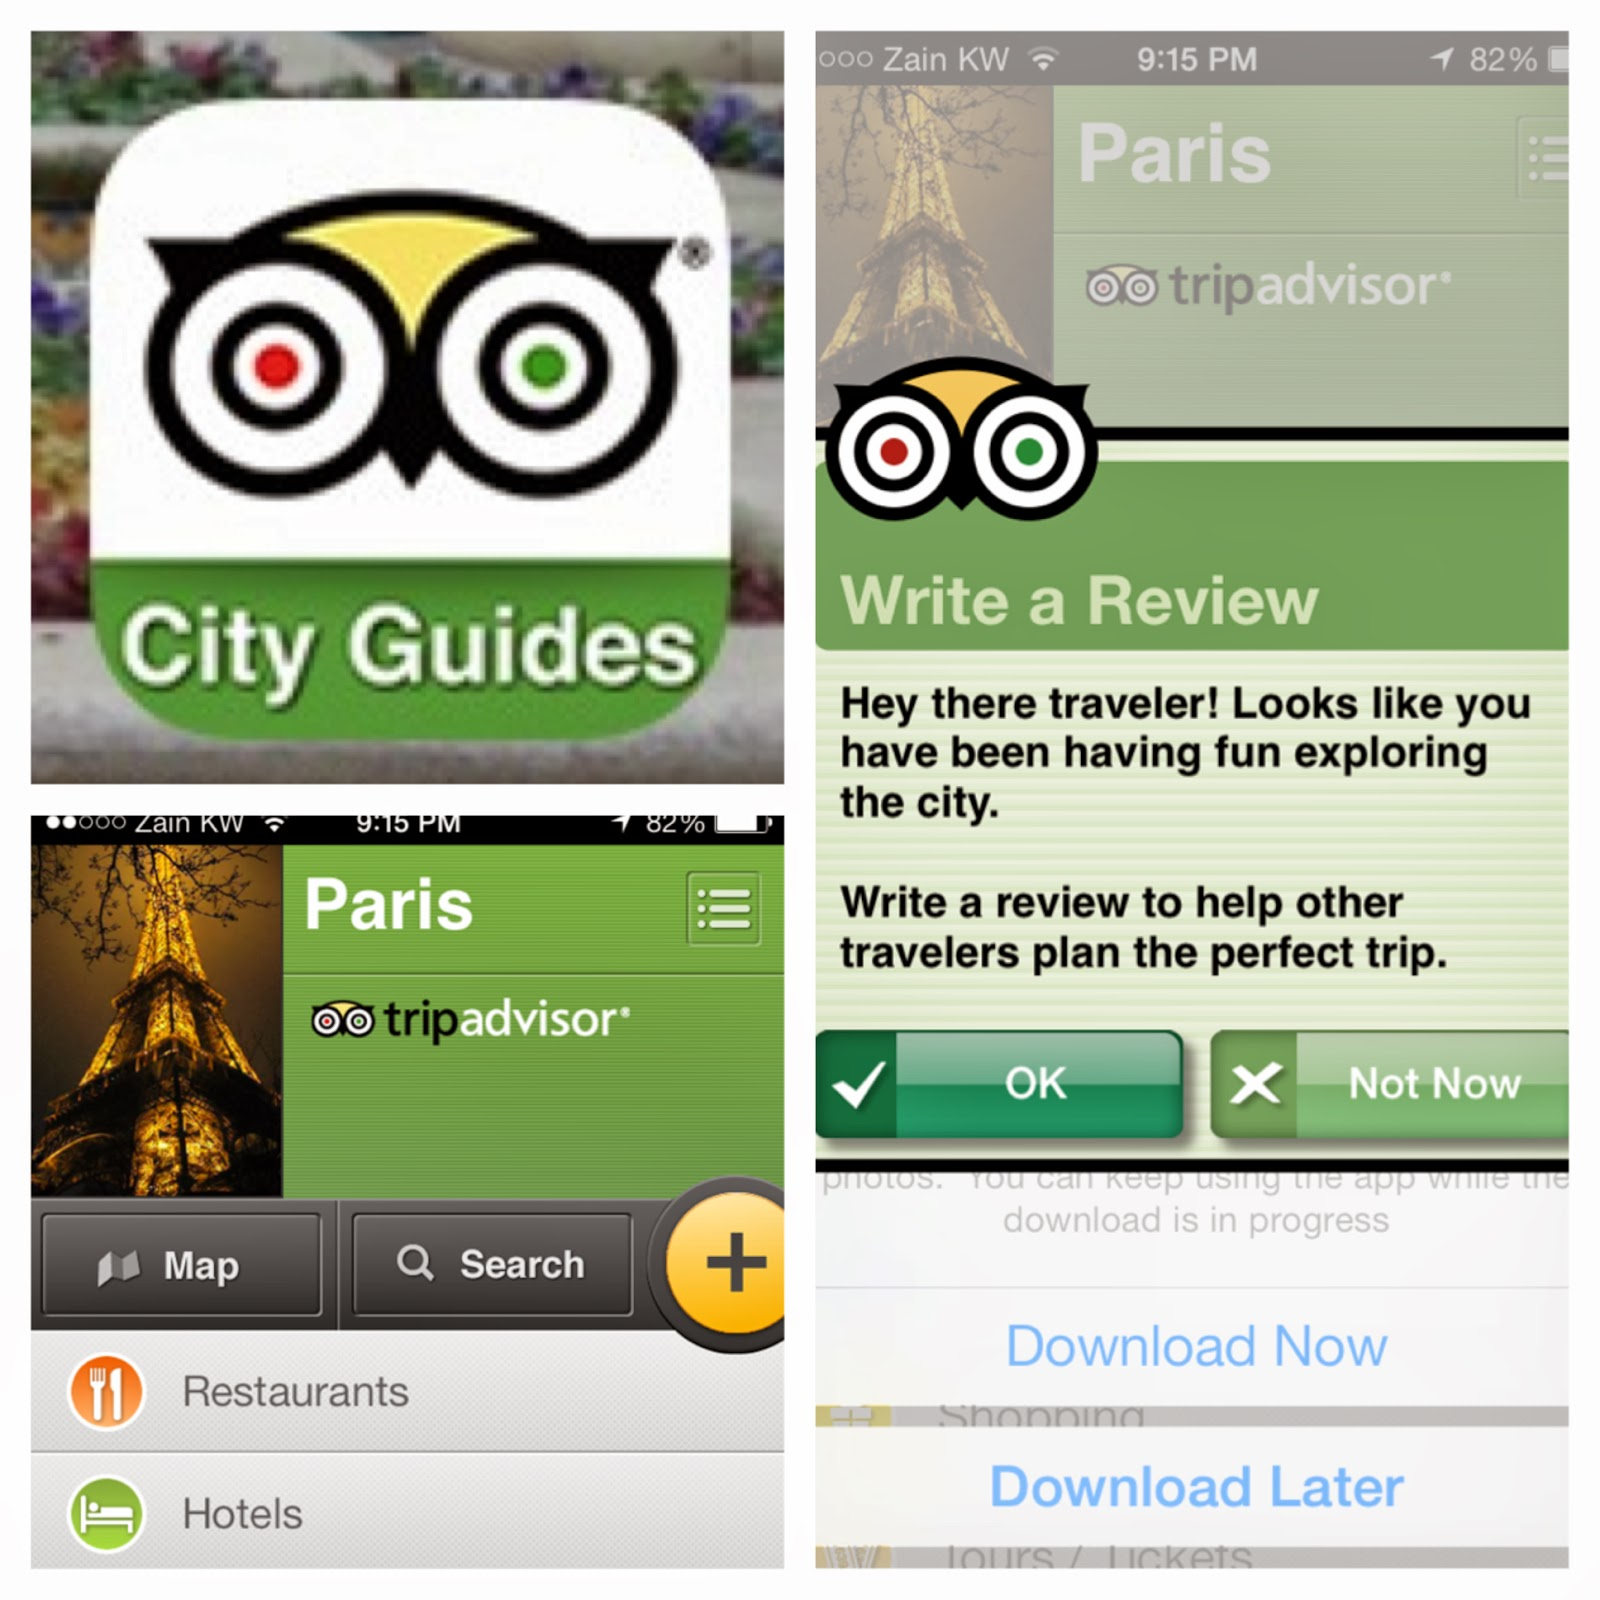 Trip advisor, city guide catalog